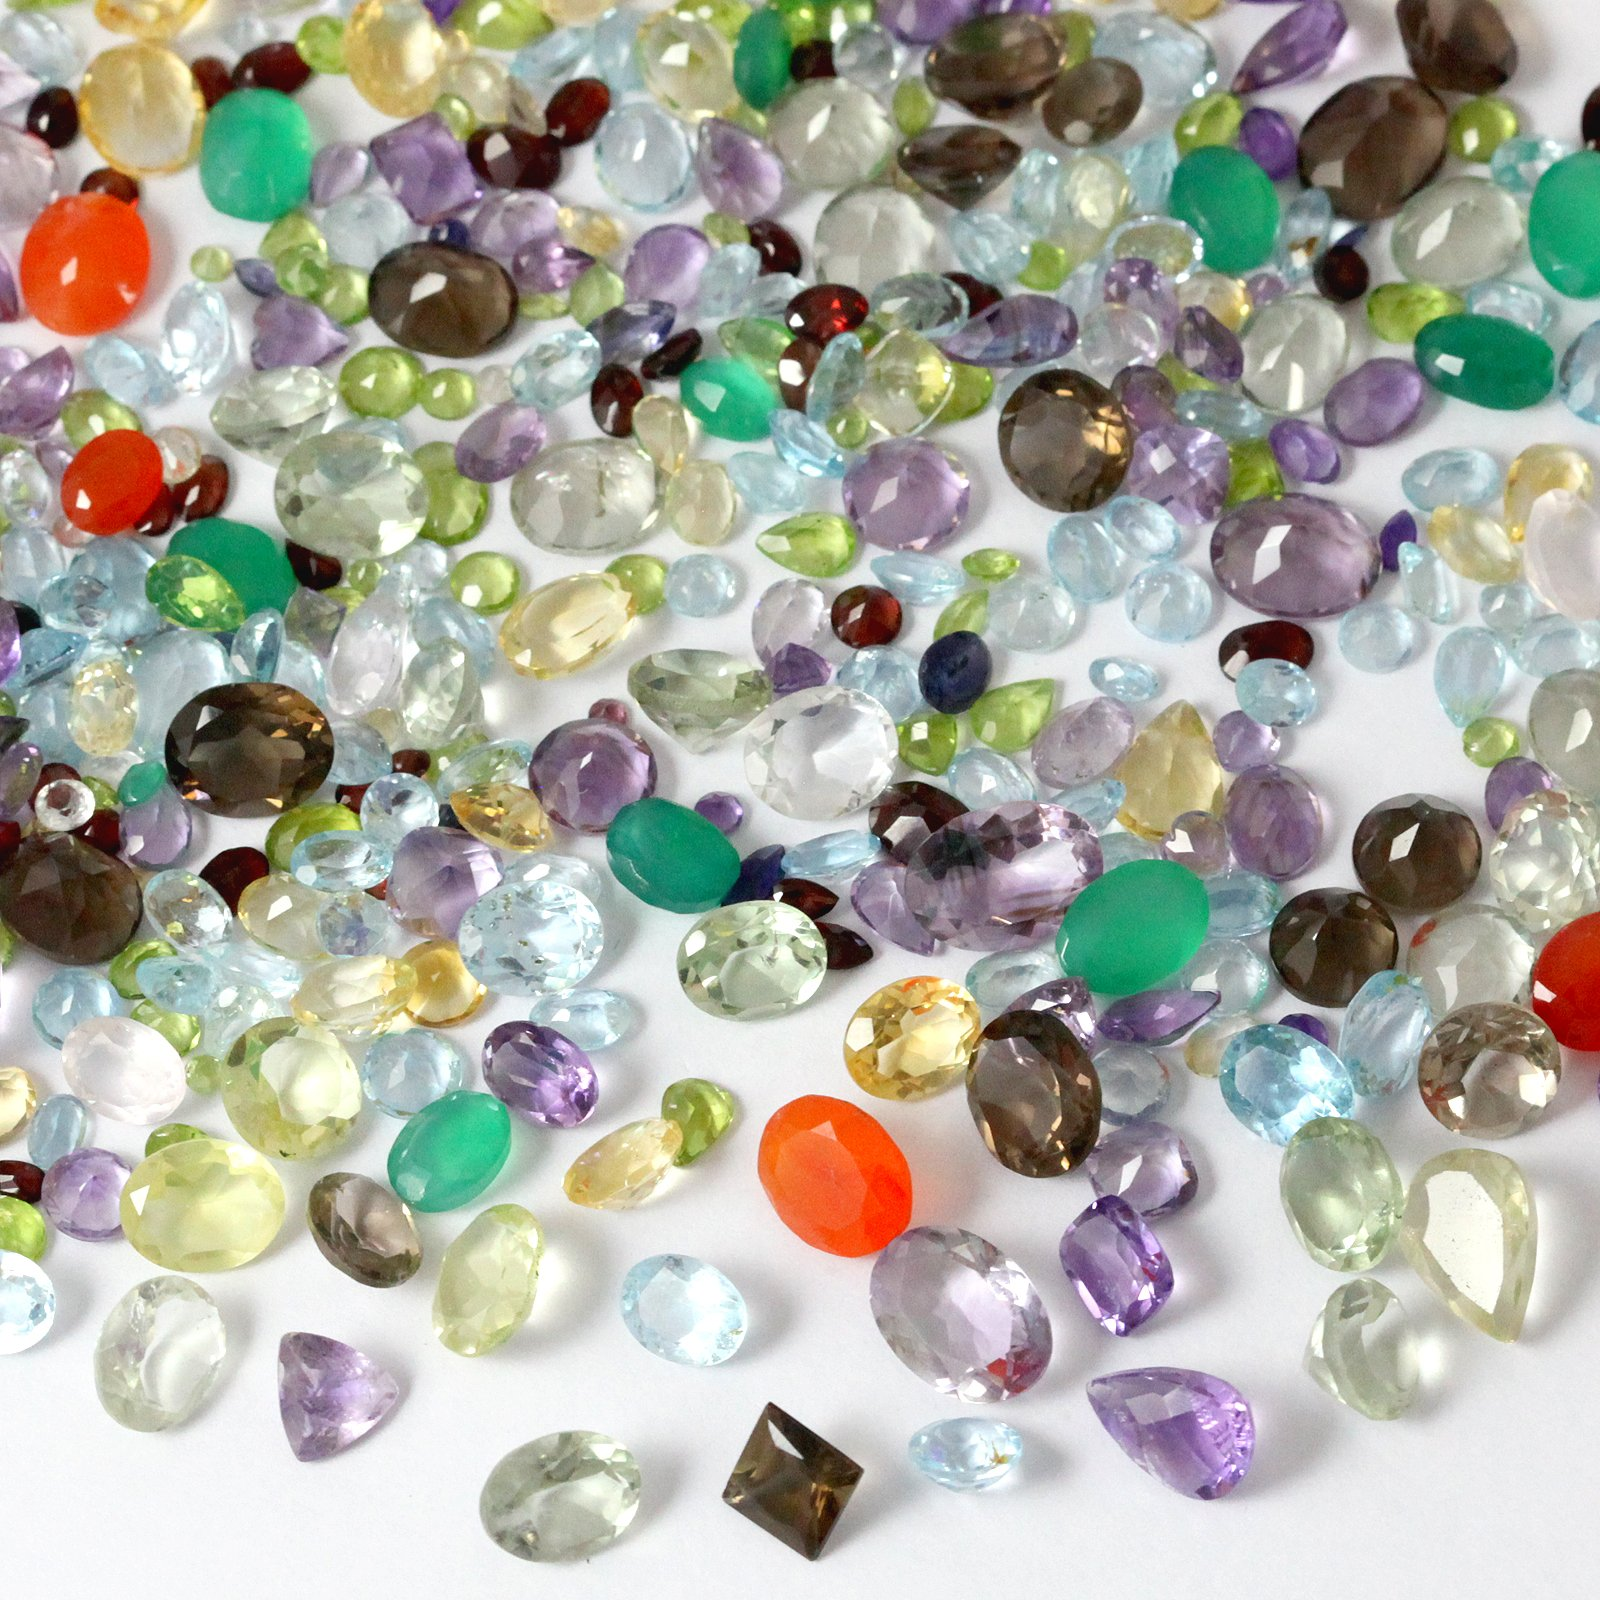 100+ Carats Mixed Gem Natural Loose Gemstone Lot Wholesale Loose Mixed Gemstones Loose Natural Wholesale Gems Mix Beverly Oaks Certificate of Authenticity